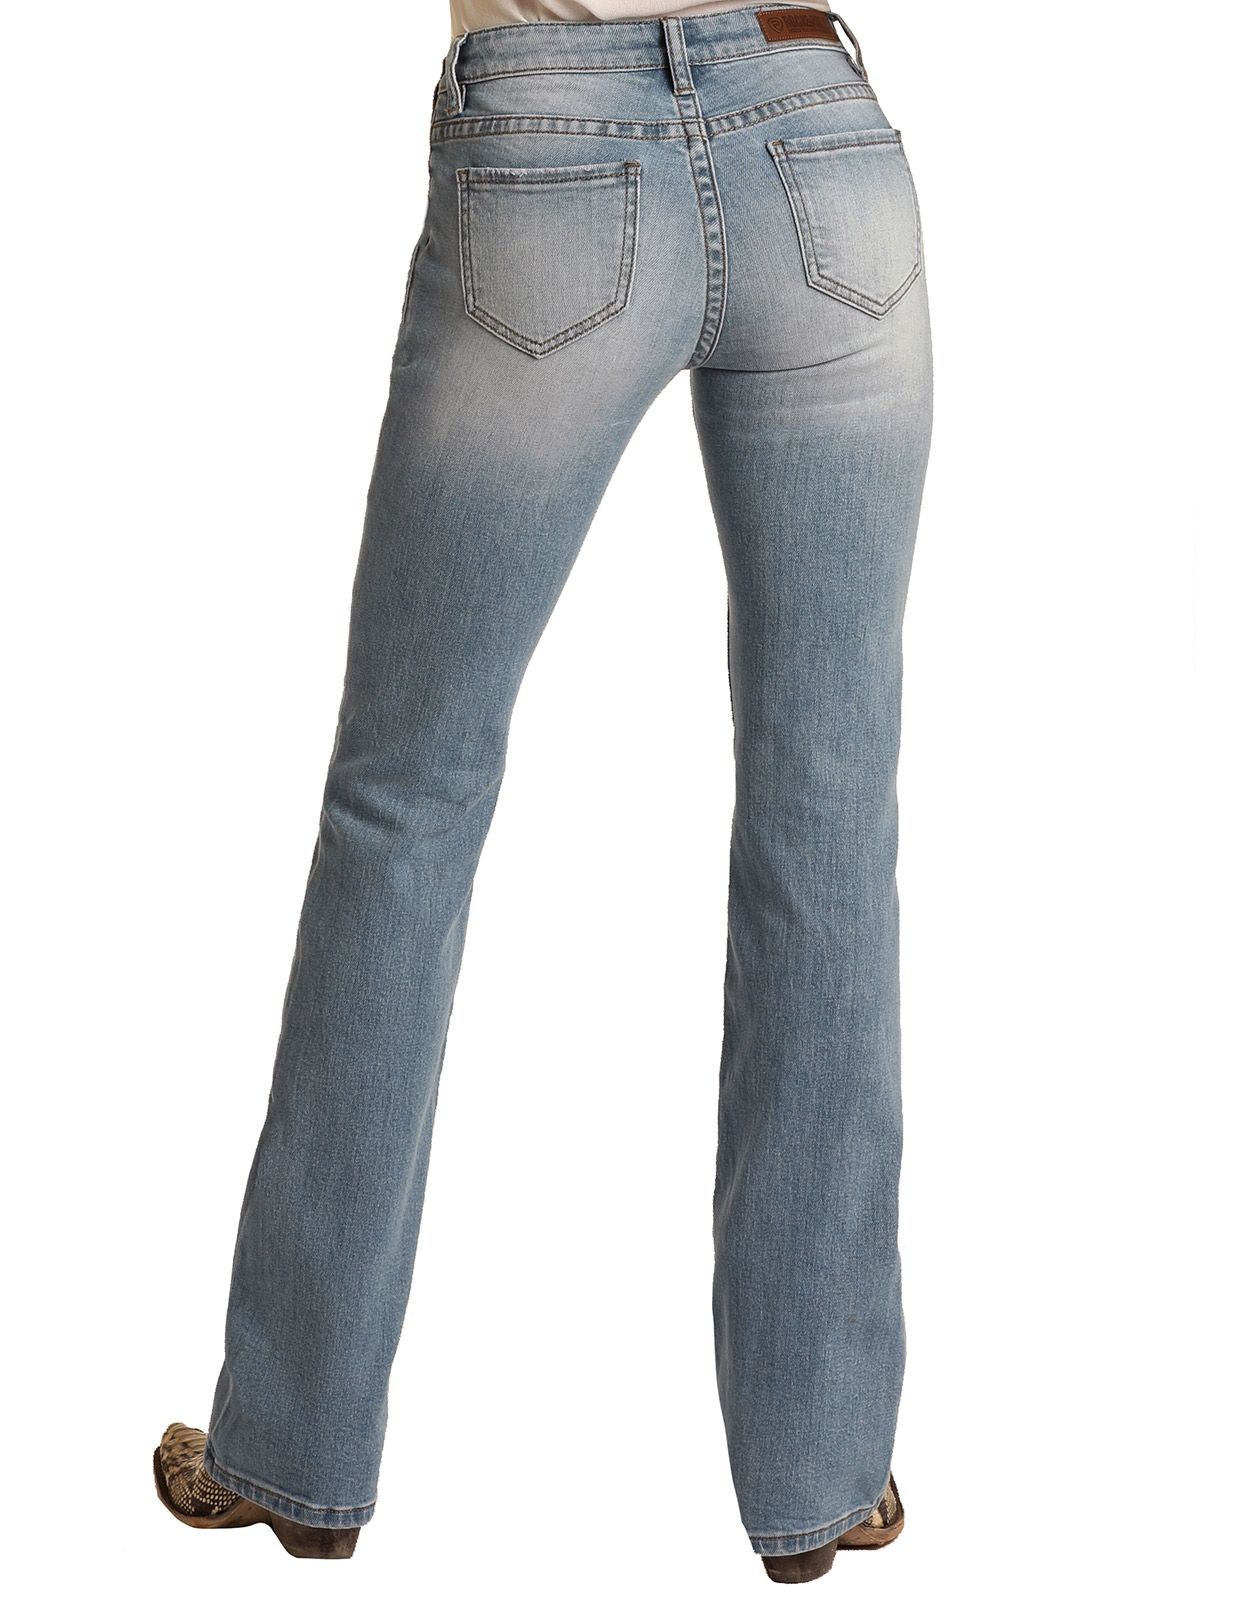 Rock & Roll Cowgirl Women's Extra Stretch Mid Rise Regular Fit Boot Cut Jeans - Light Wash